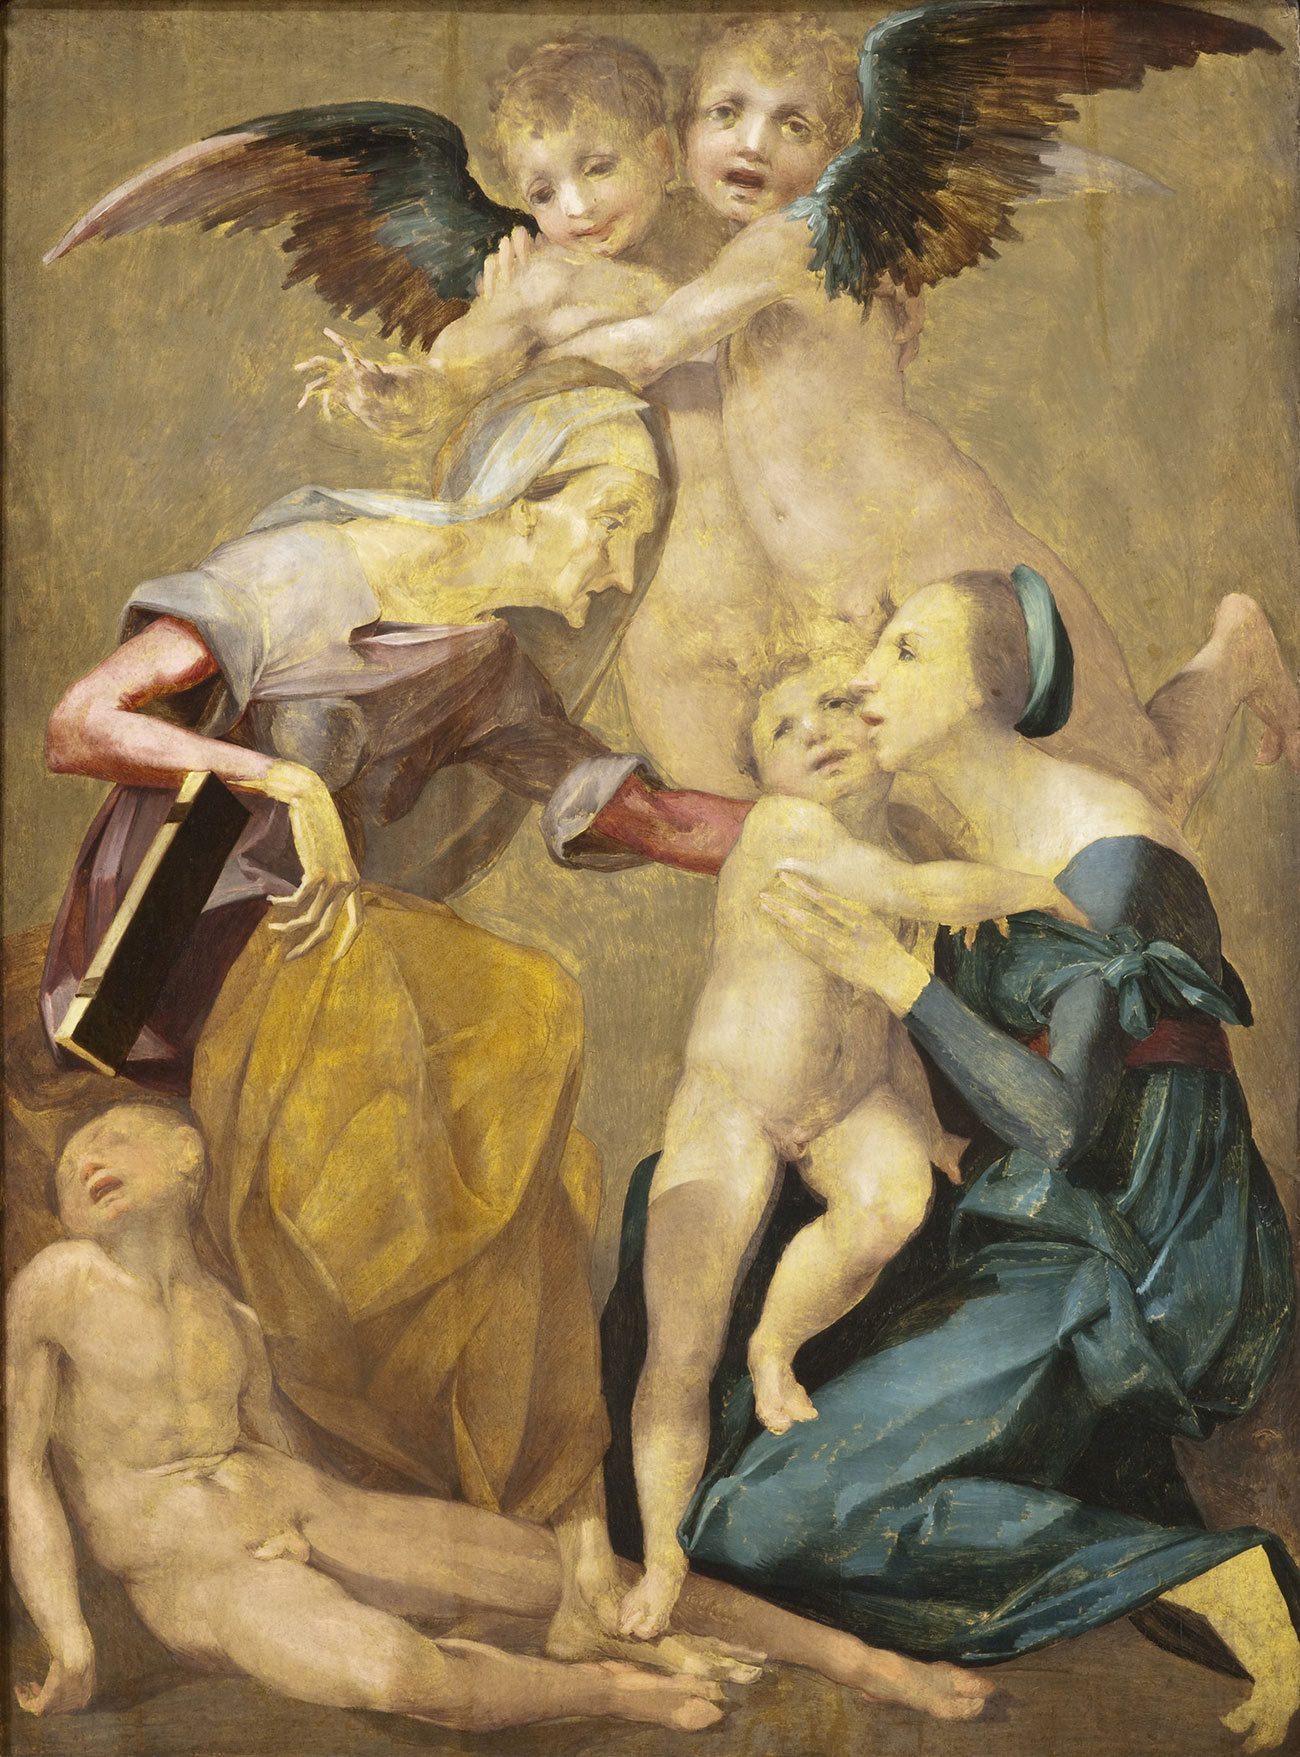 Painting of two woman, the older one in a gold skirt with a dead or unconscious boy at her feet, and the younger in a blue dress holding a naked boy. Two child angels hover behind them, with dark wings extended.